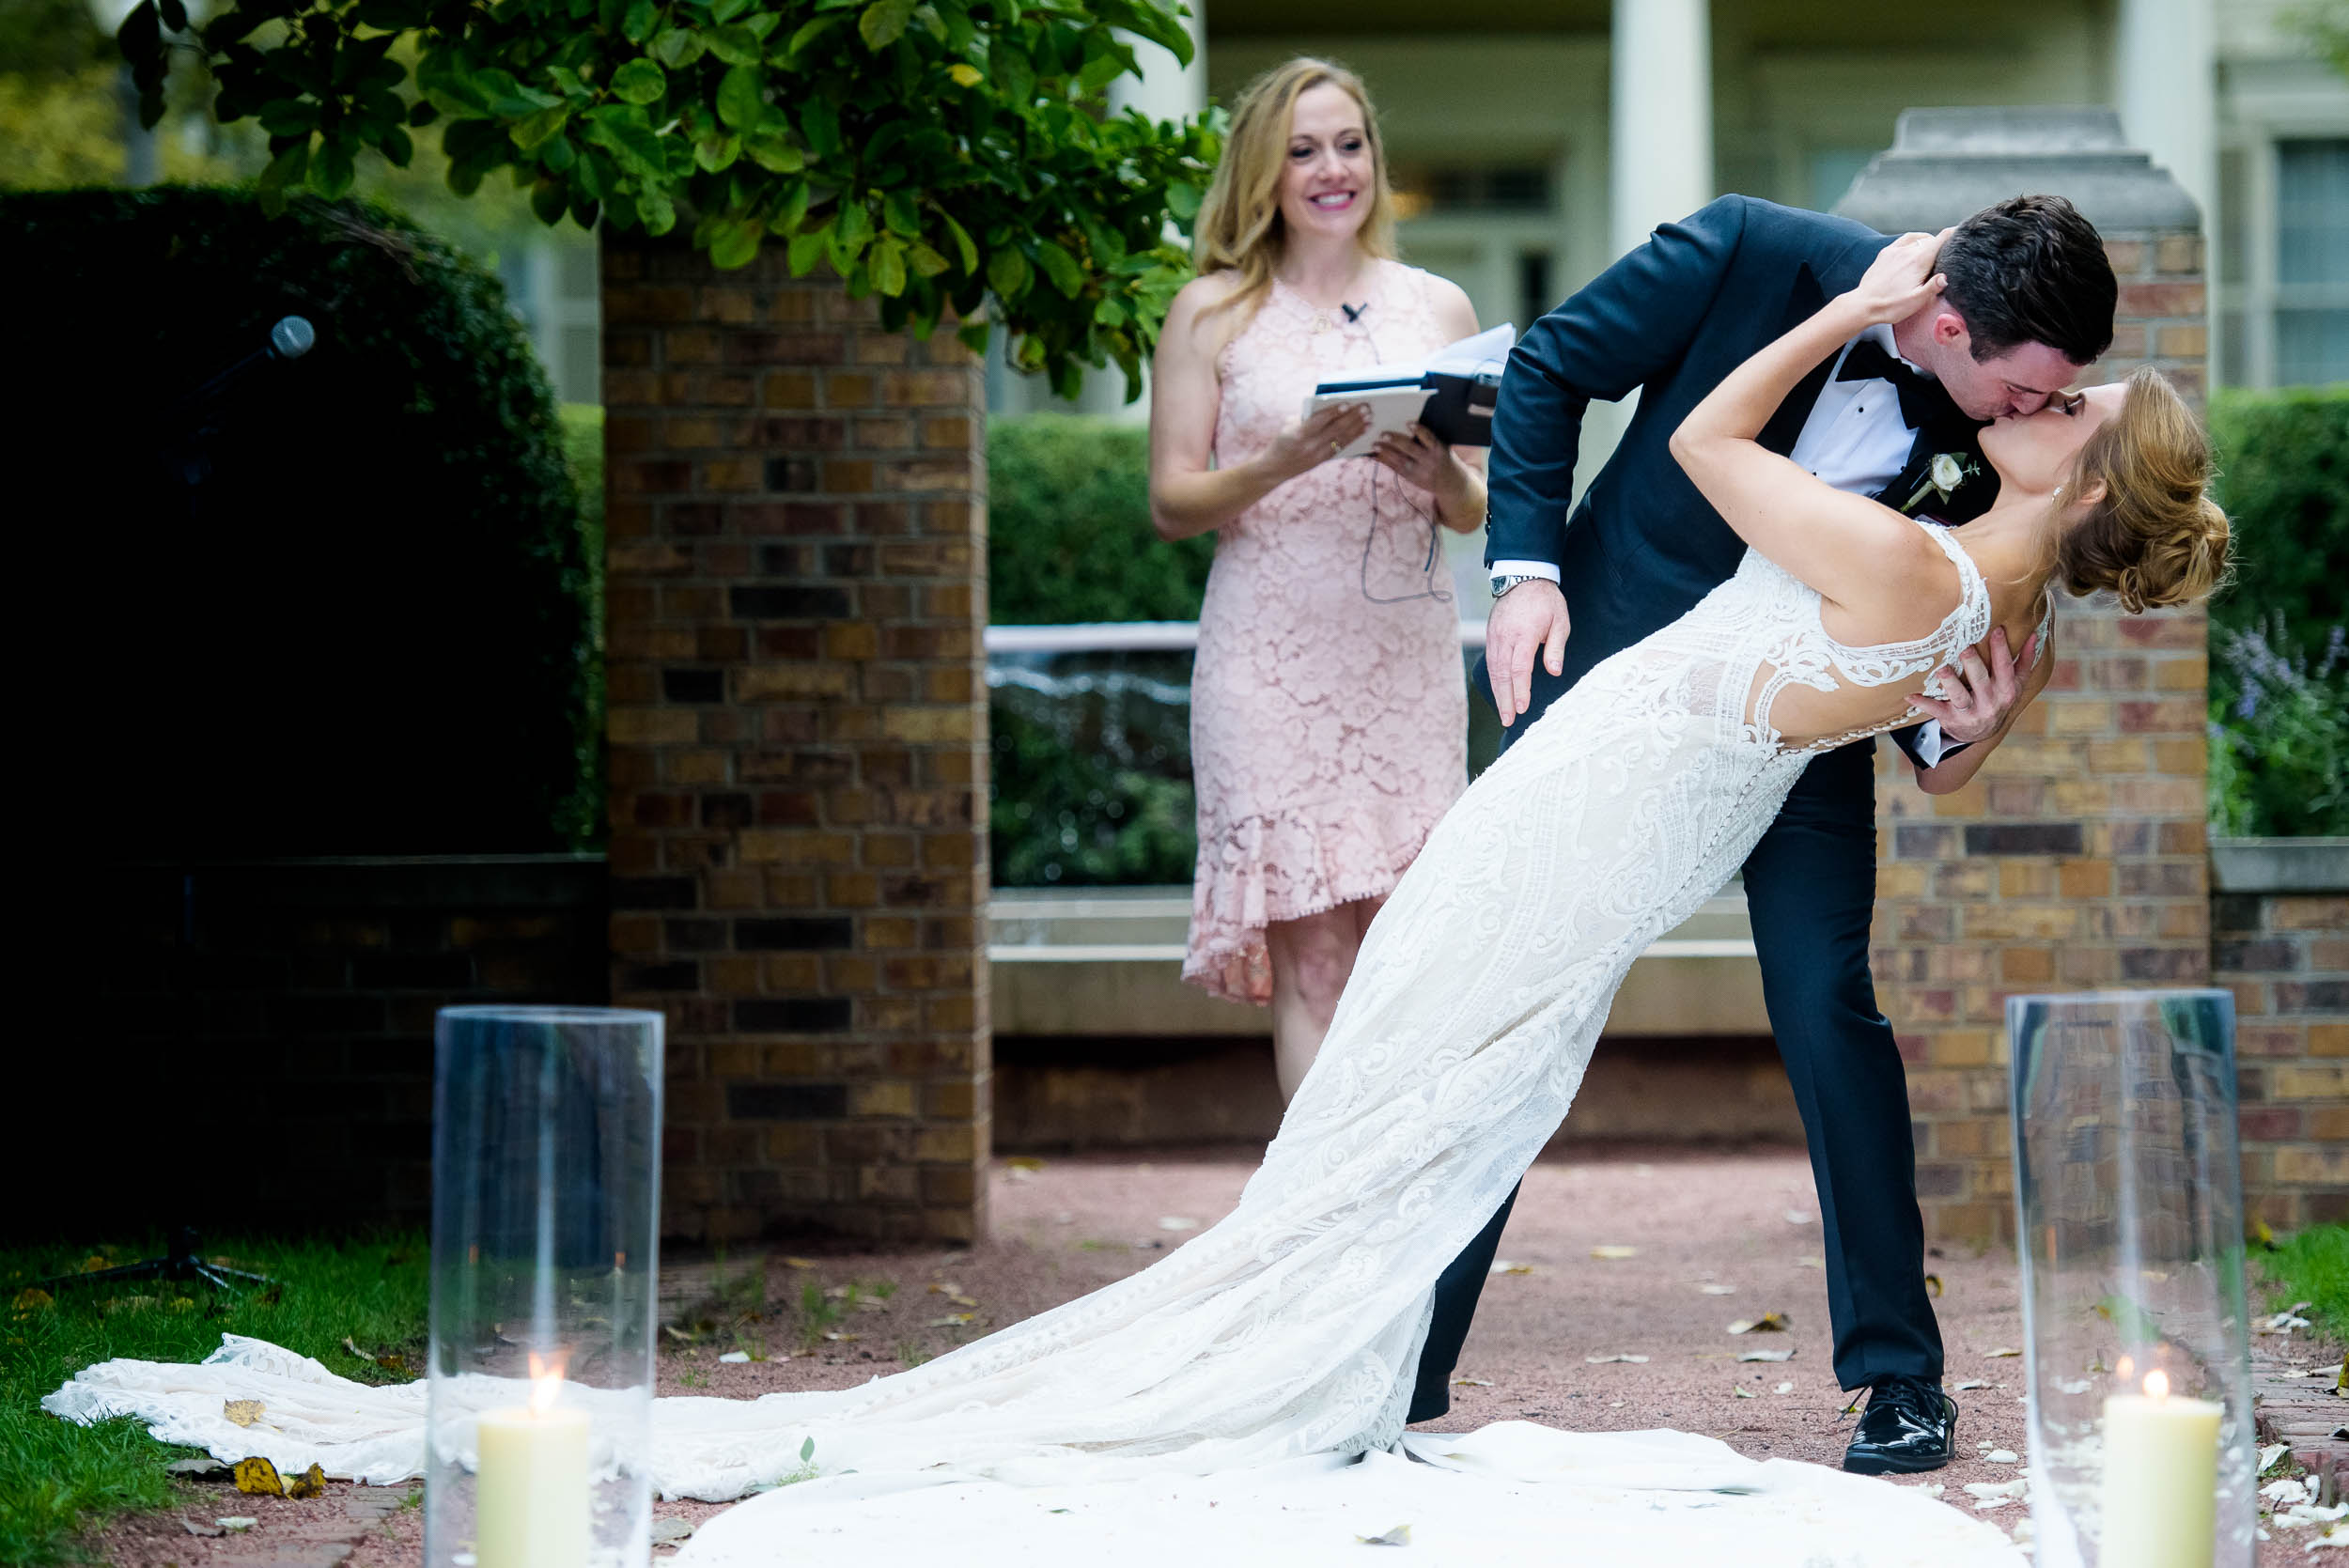 Groom dips the bride during a Glessner House Chicago wedding ceremony.